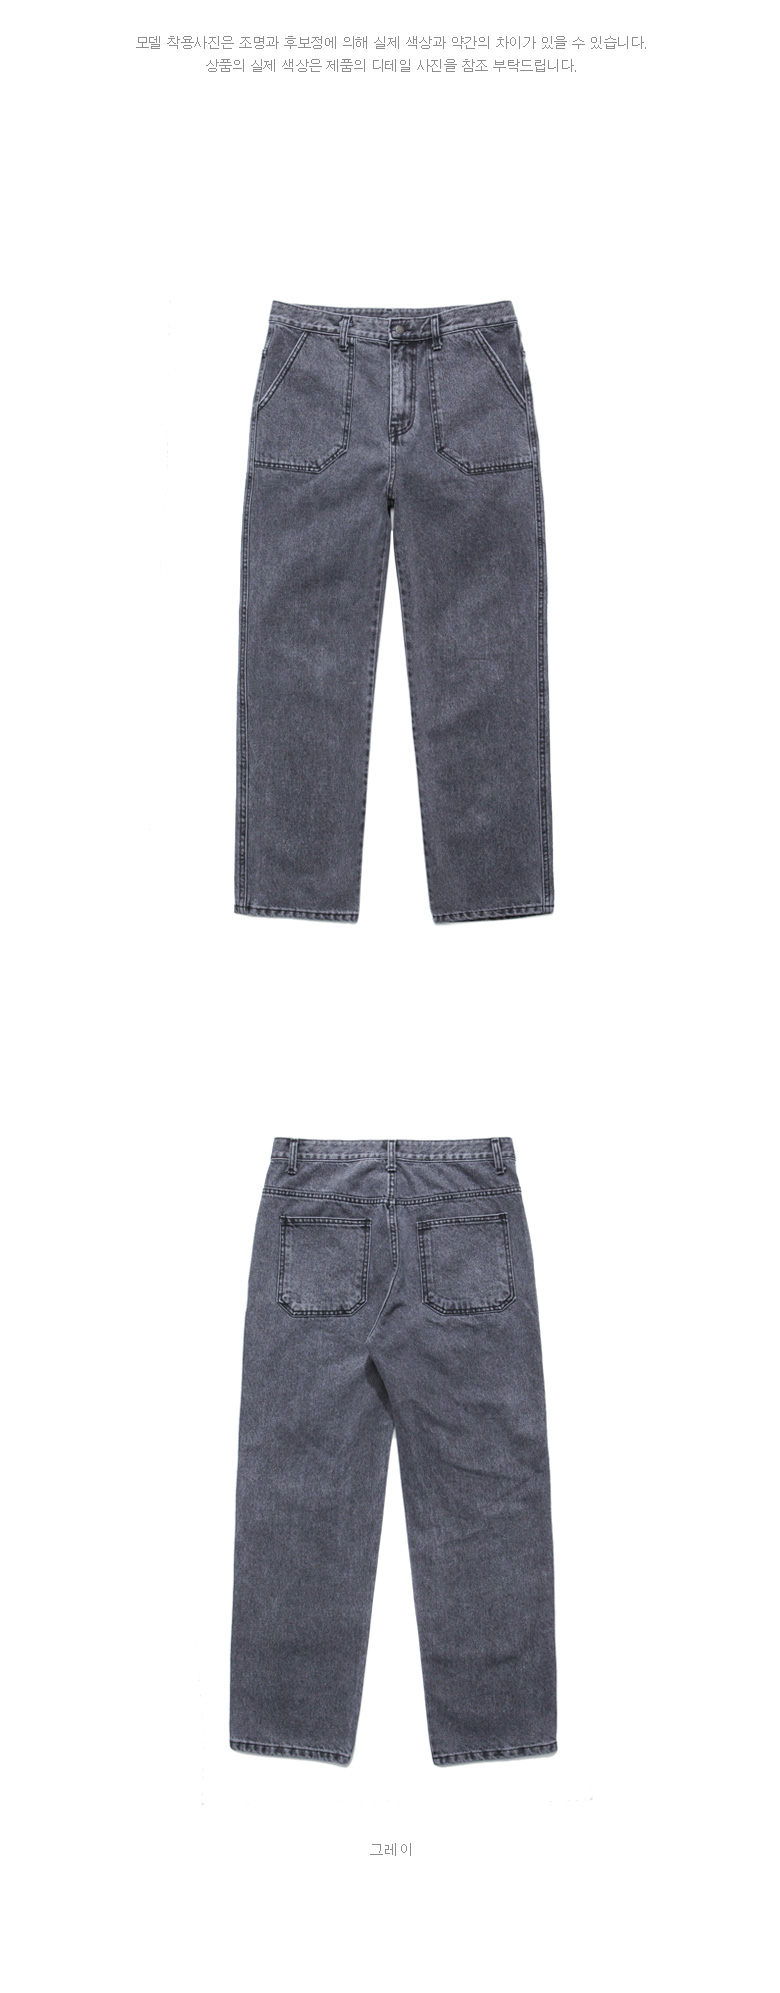 20190131_ps_complete_pant_gray_uk_01.jpg